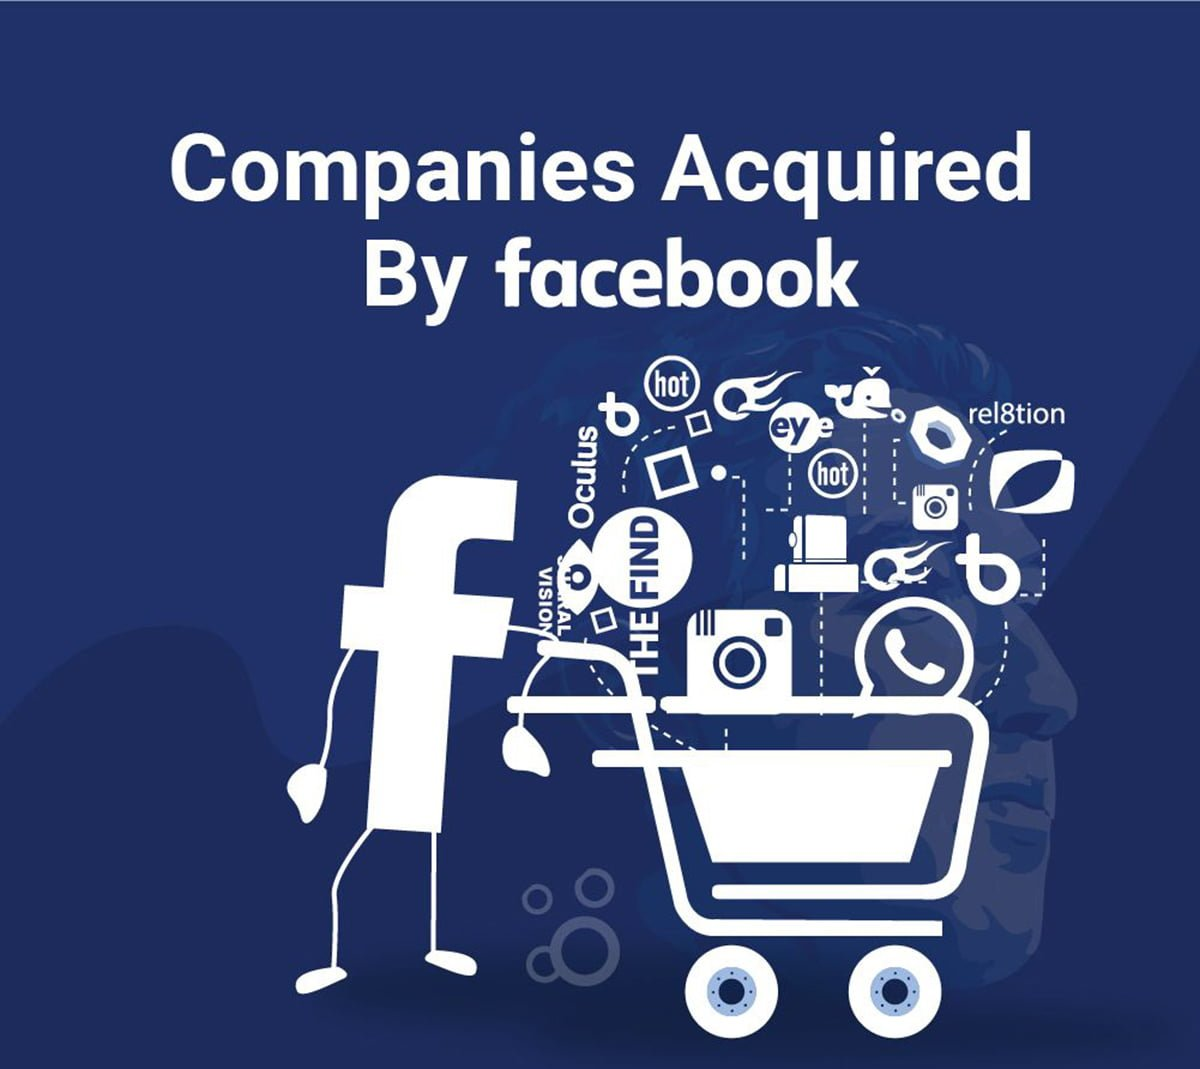 Facebook Acquisitions